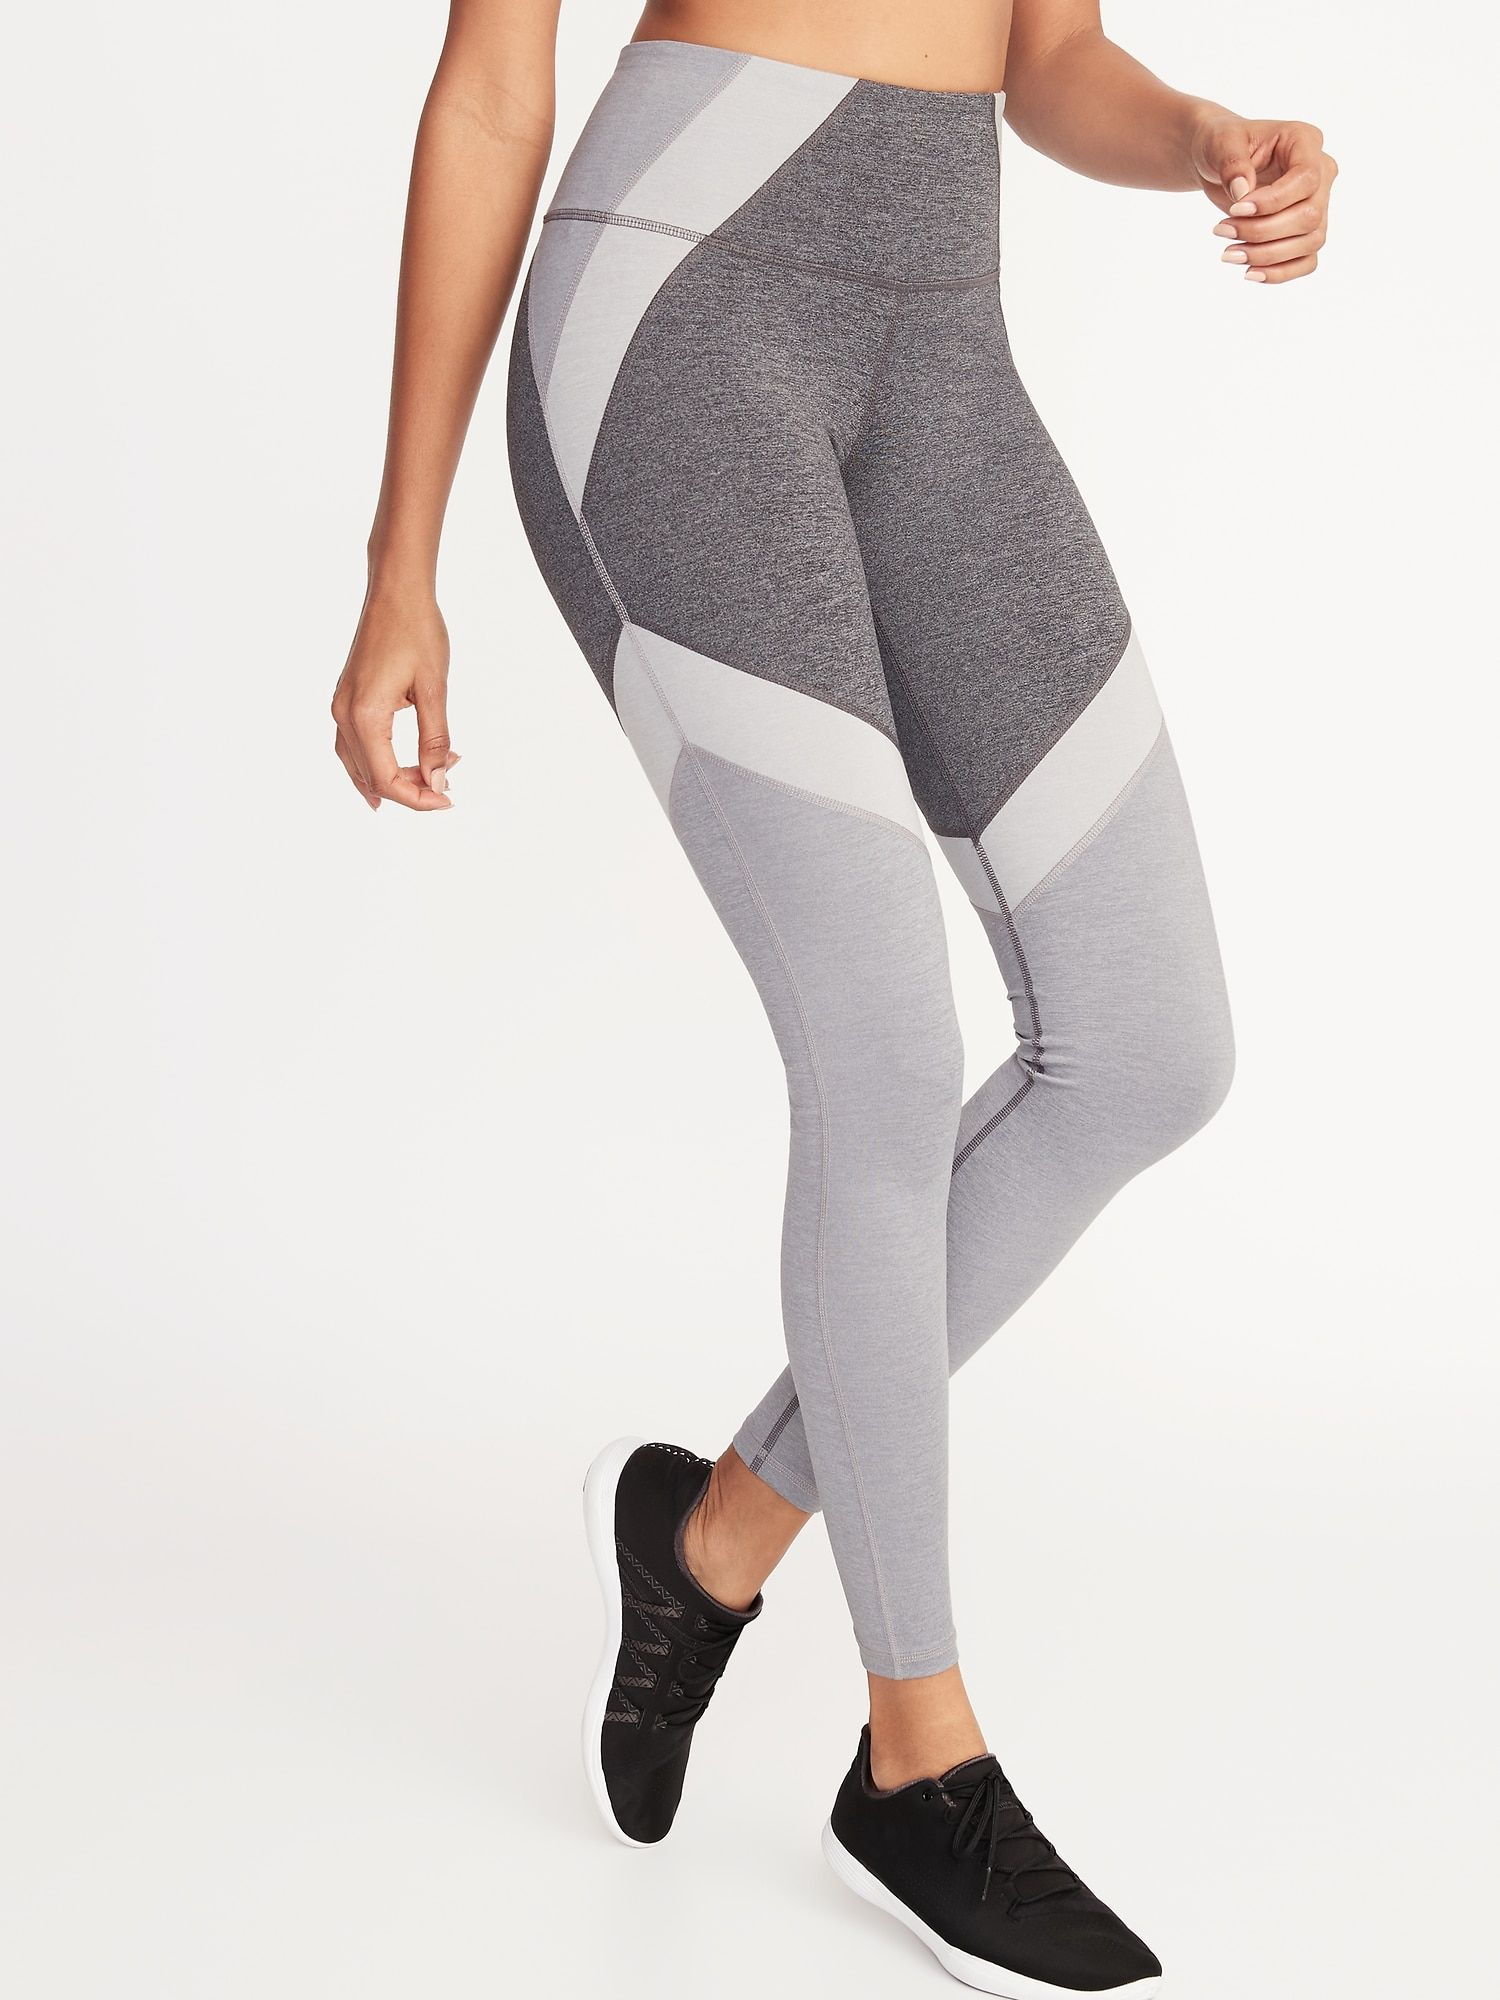 42d49066870c9 High-Rise Elevate Color-Block Compression Leggings for Women in 2019 ...